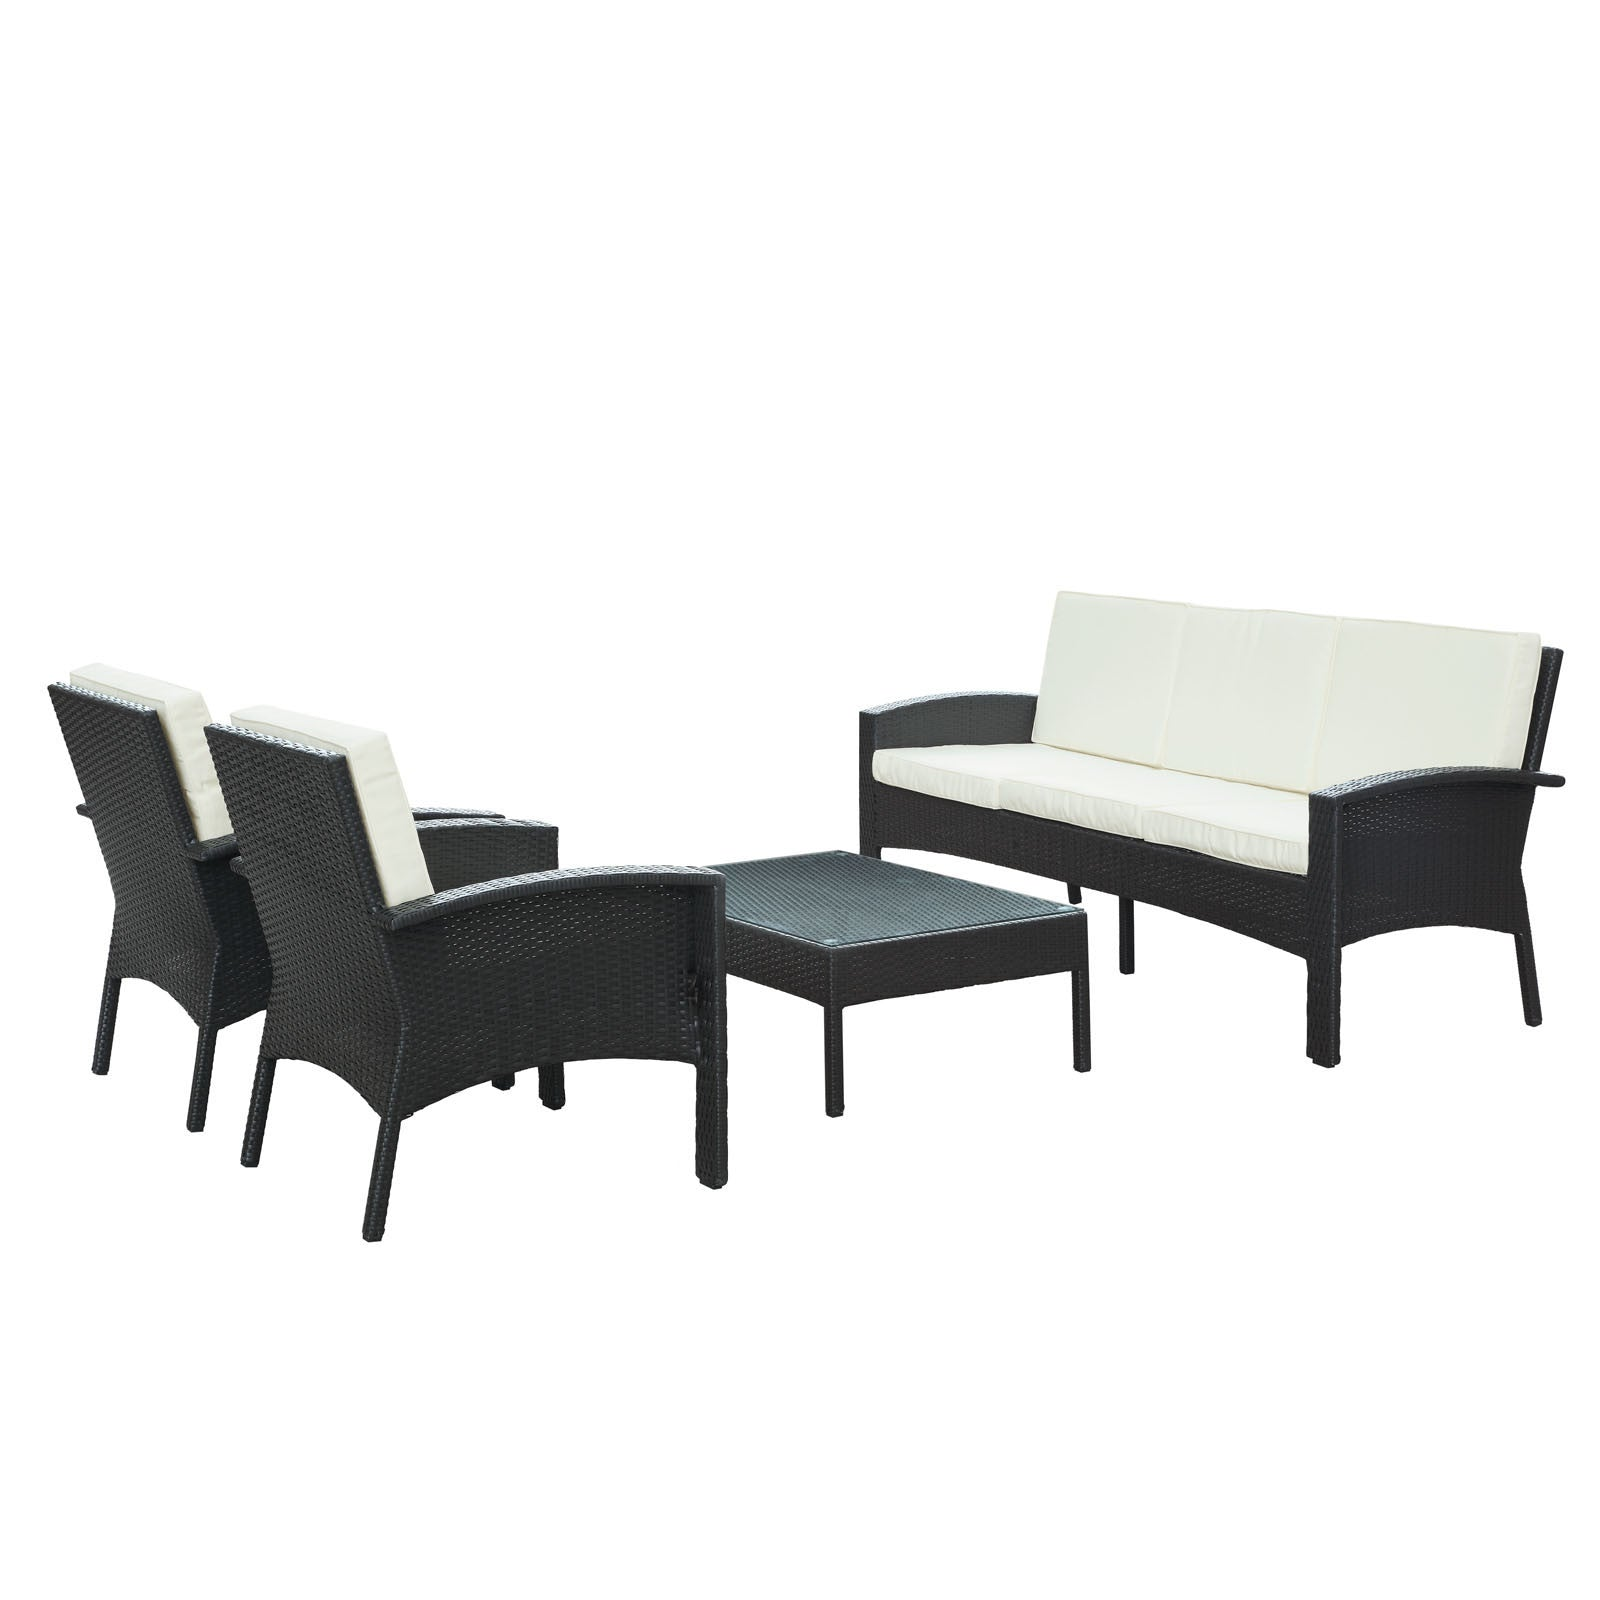 Patio Sets The Modern Source